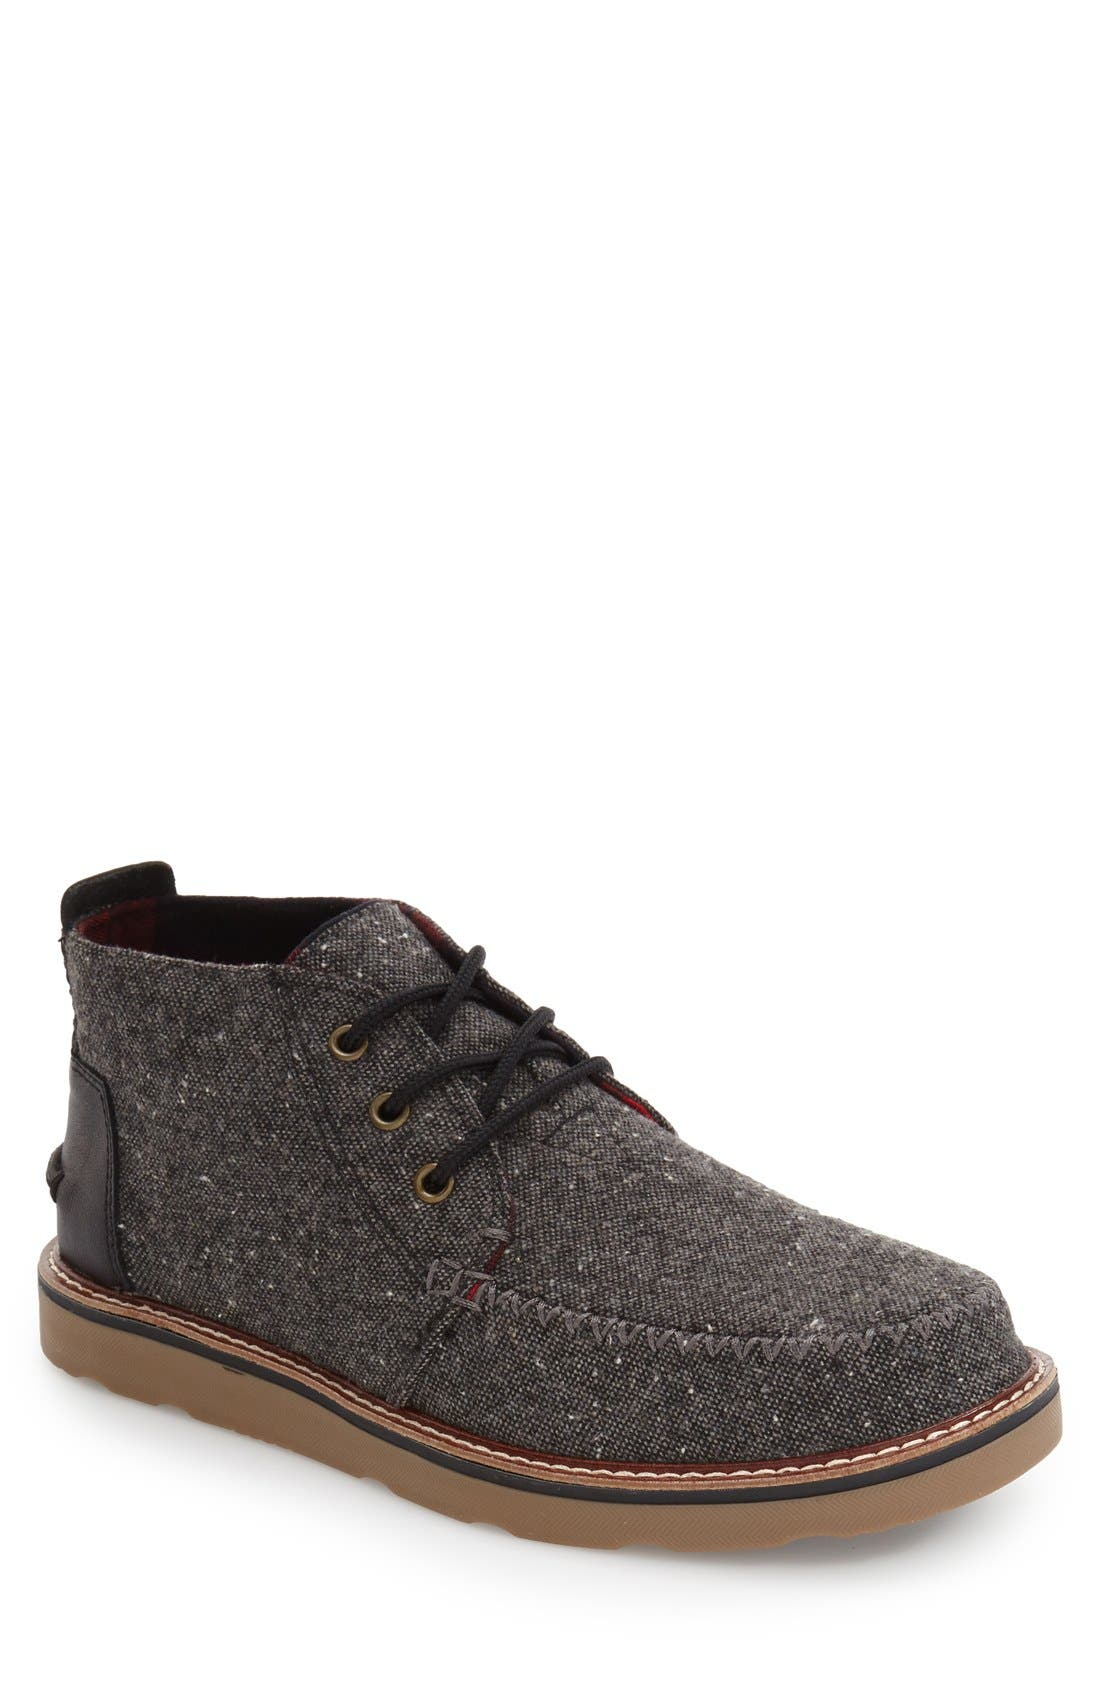 Main Image - TOMS Chukka Boot (Men)